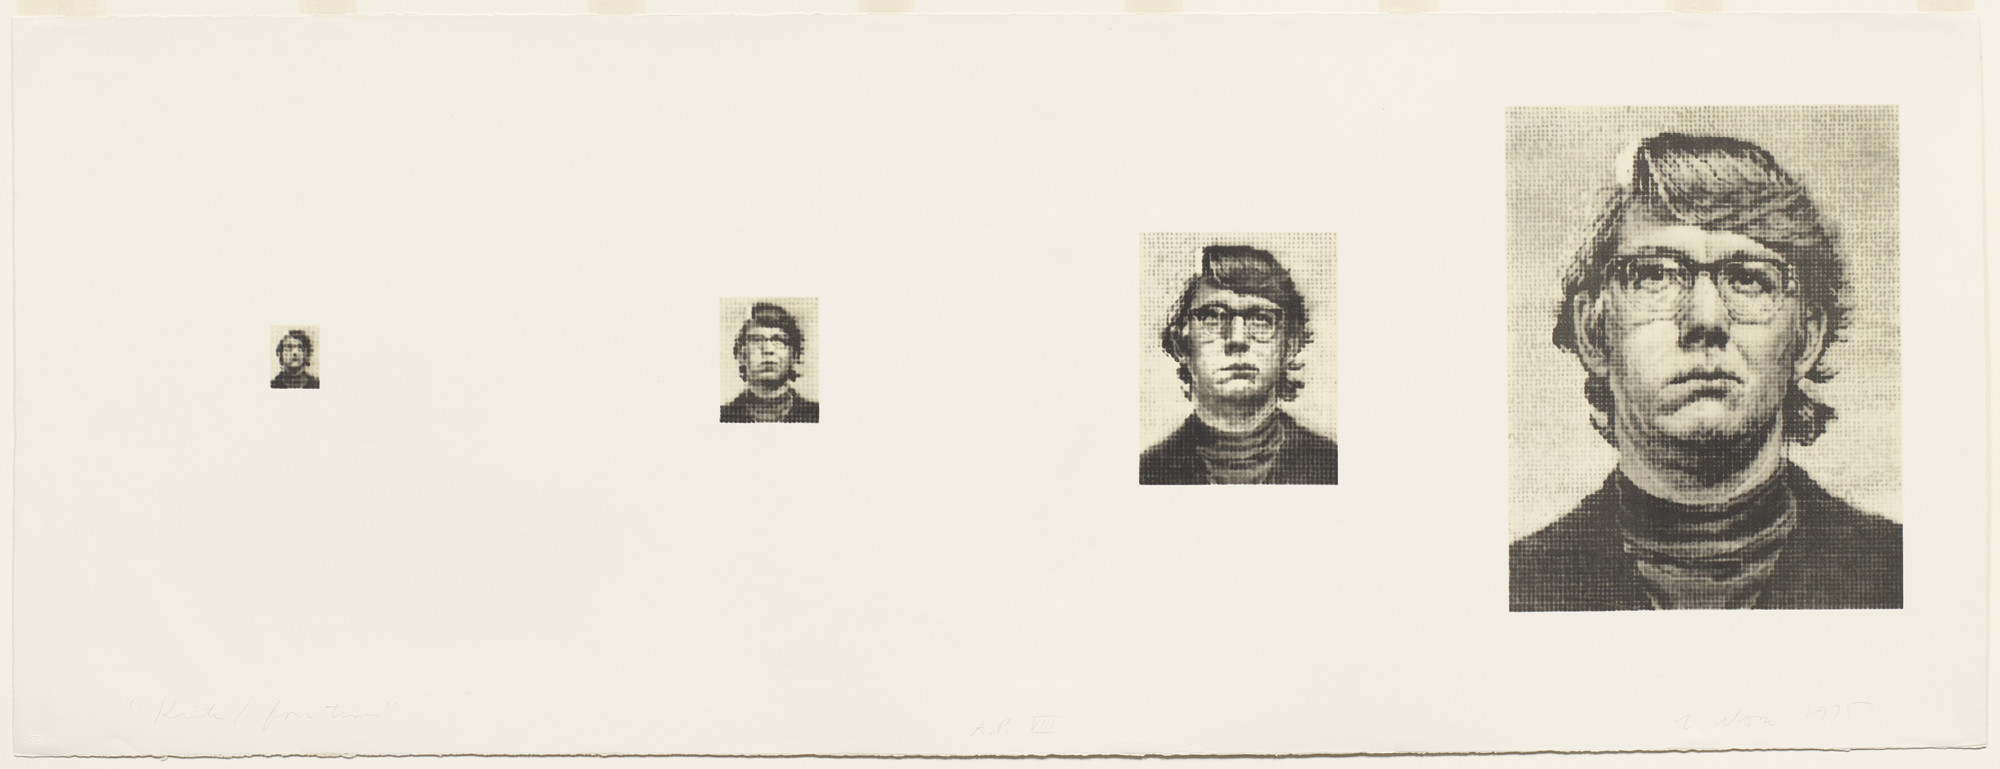 Chuck Close. Keith/Four Times. 1975